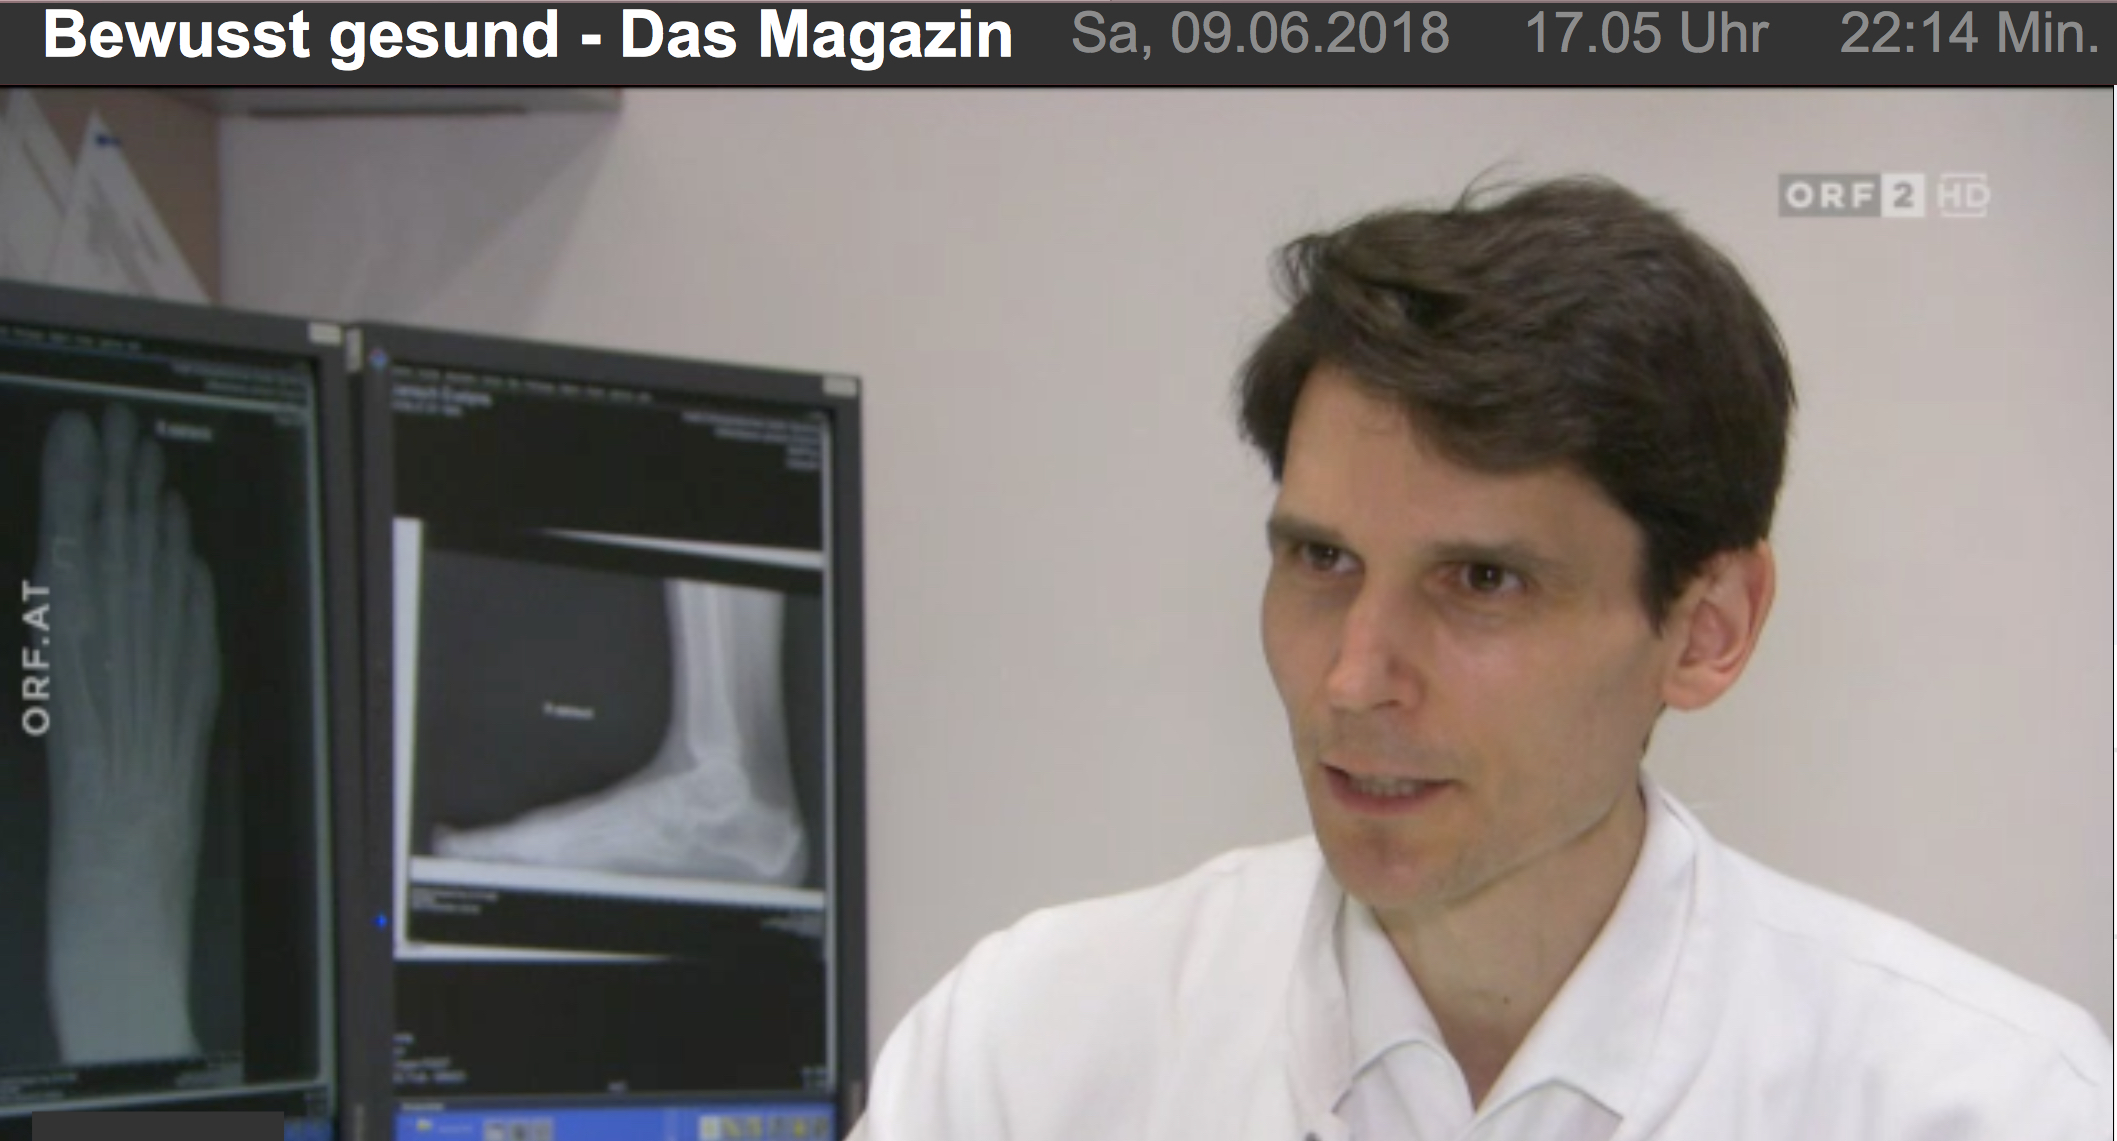 New fixation methods for hallux valgus surgery with resorbable screws - Dr. Bock